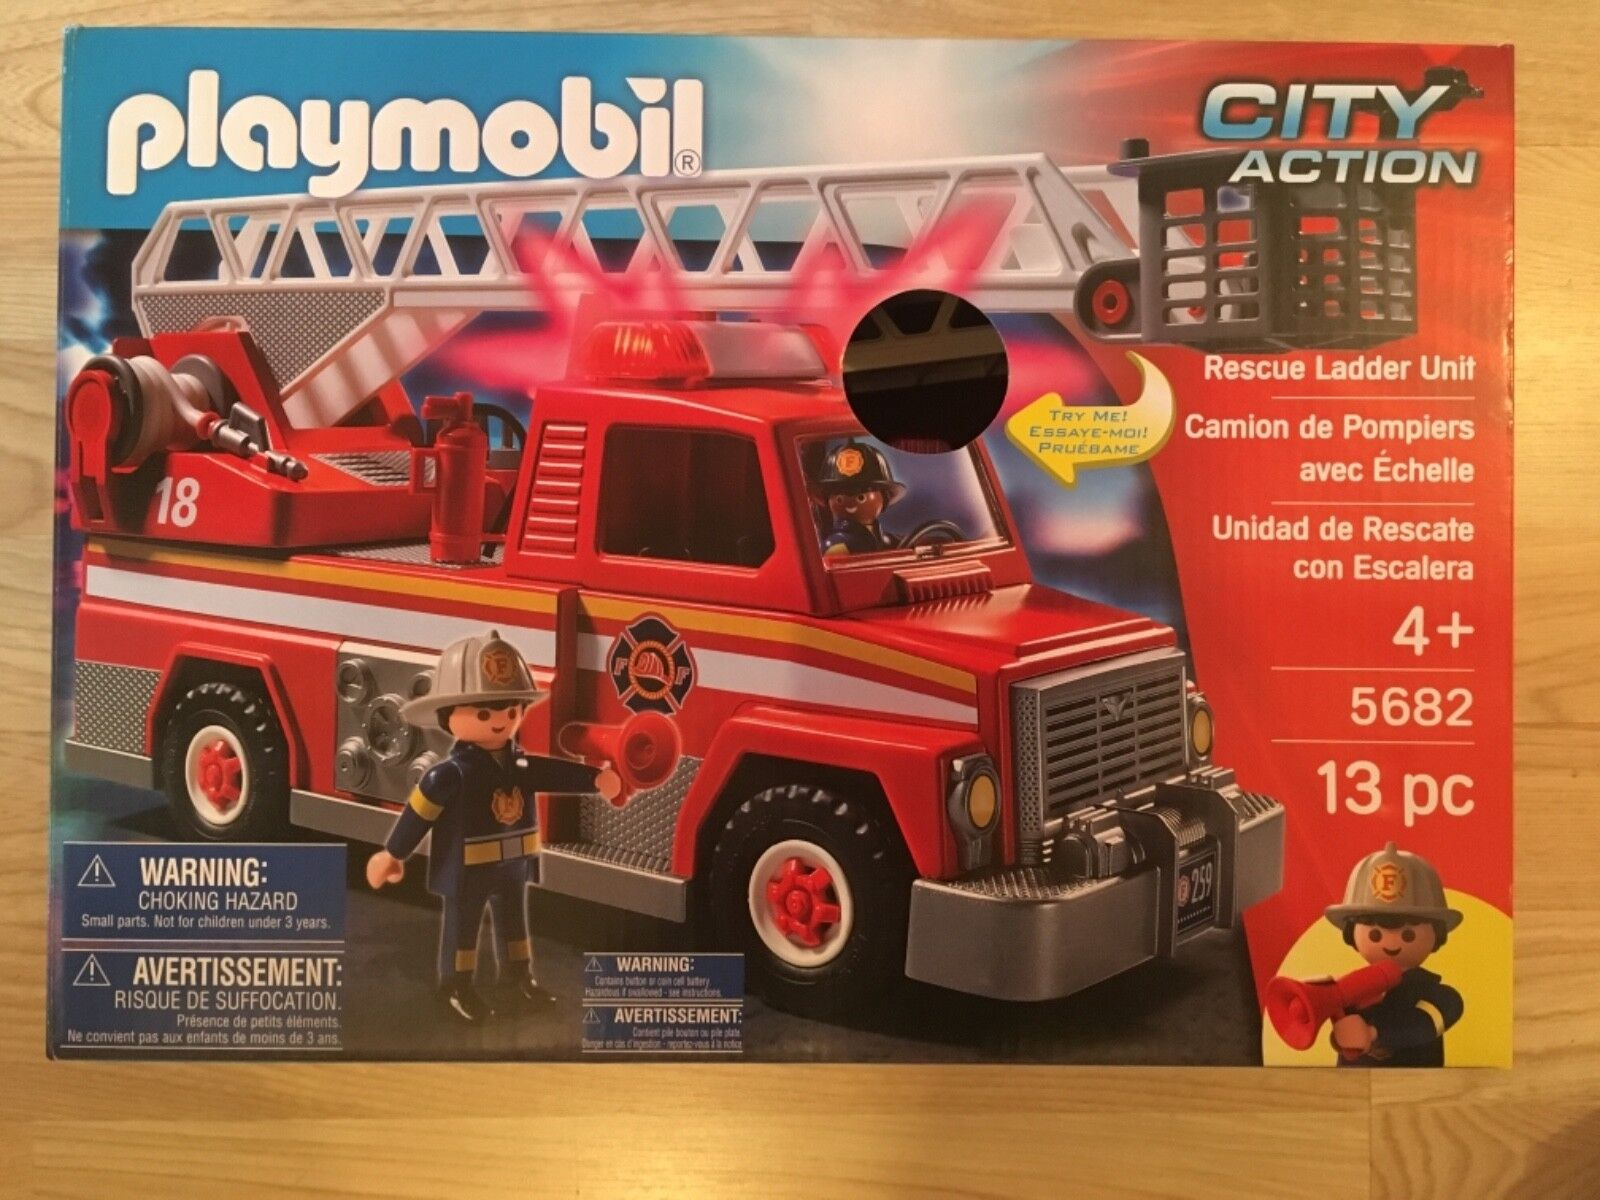 Playmobil City Action FIRE ENGINE 5682 Lights & Sounds Rescue Ladder Toy Vehicle